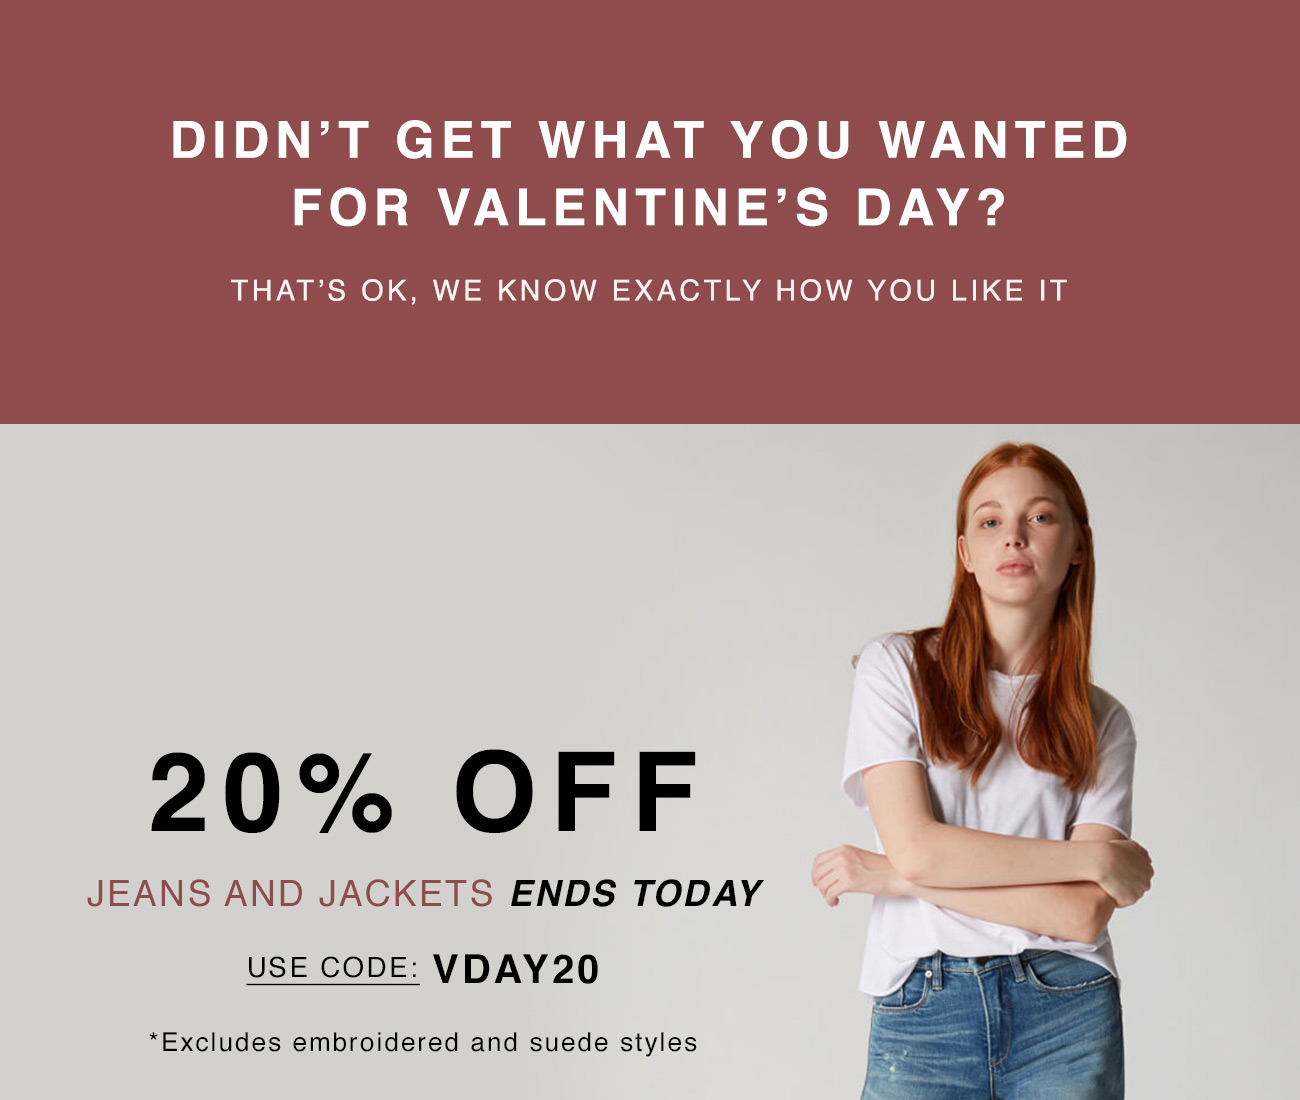 Didn't Get What You Wanted for Valentine's Day?